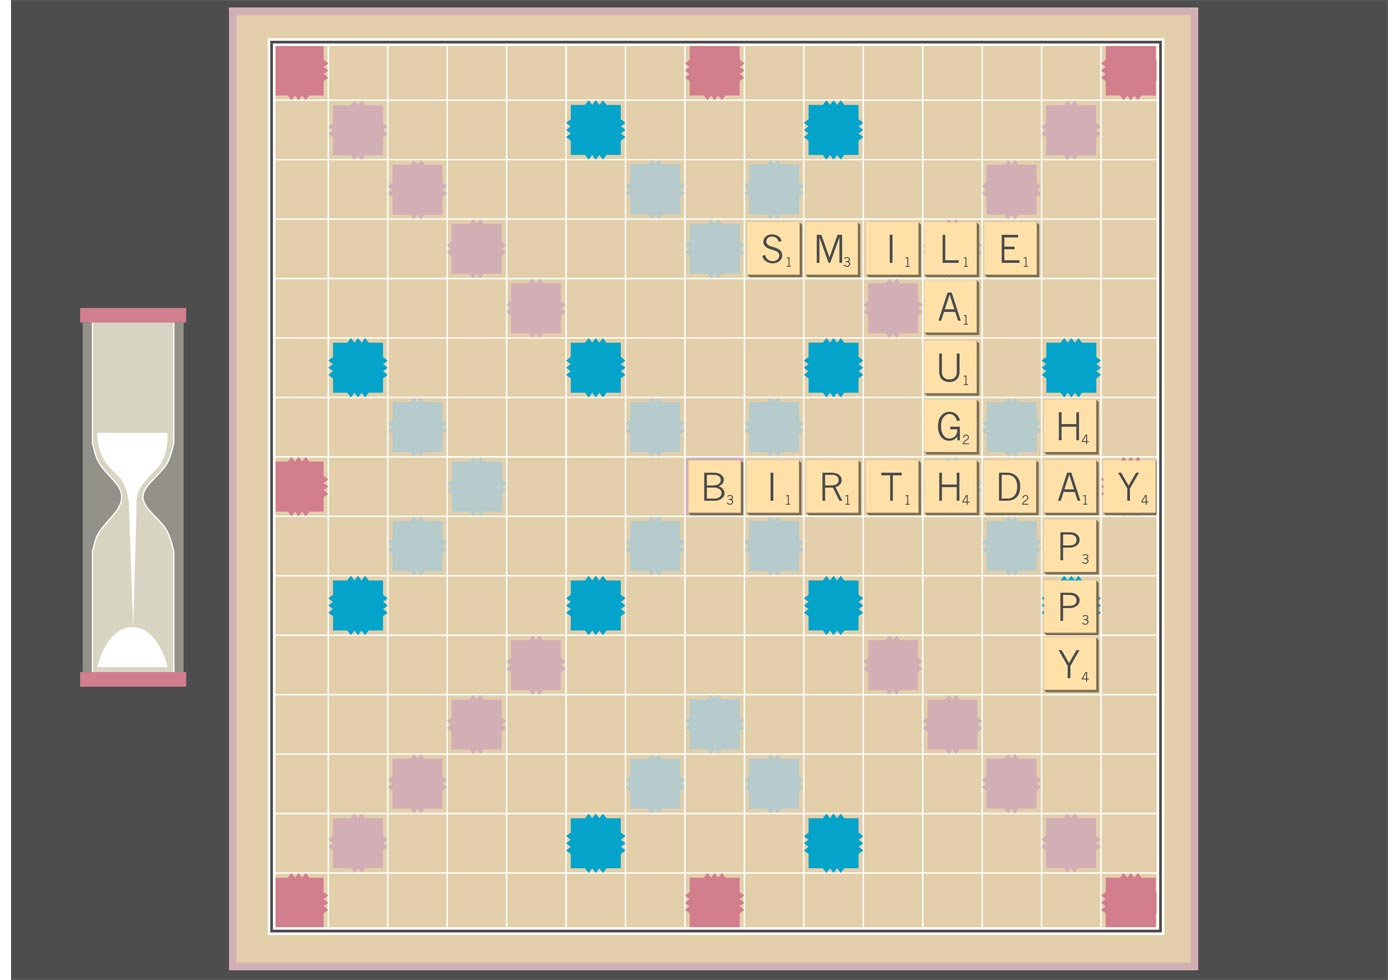 picture regarding Free Printable Scrabble Board referred to as Scrabble Board No cost Vector Artwork - (13 Free of charge Downloads)